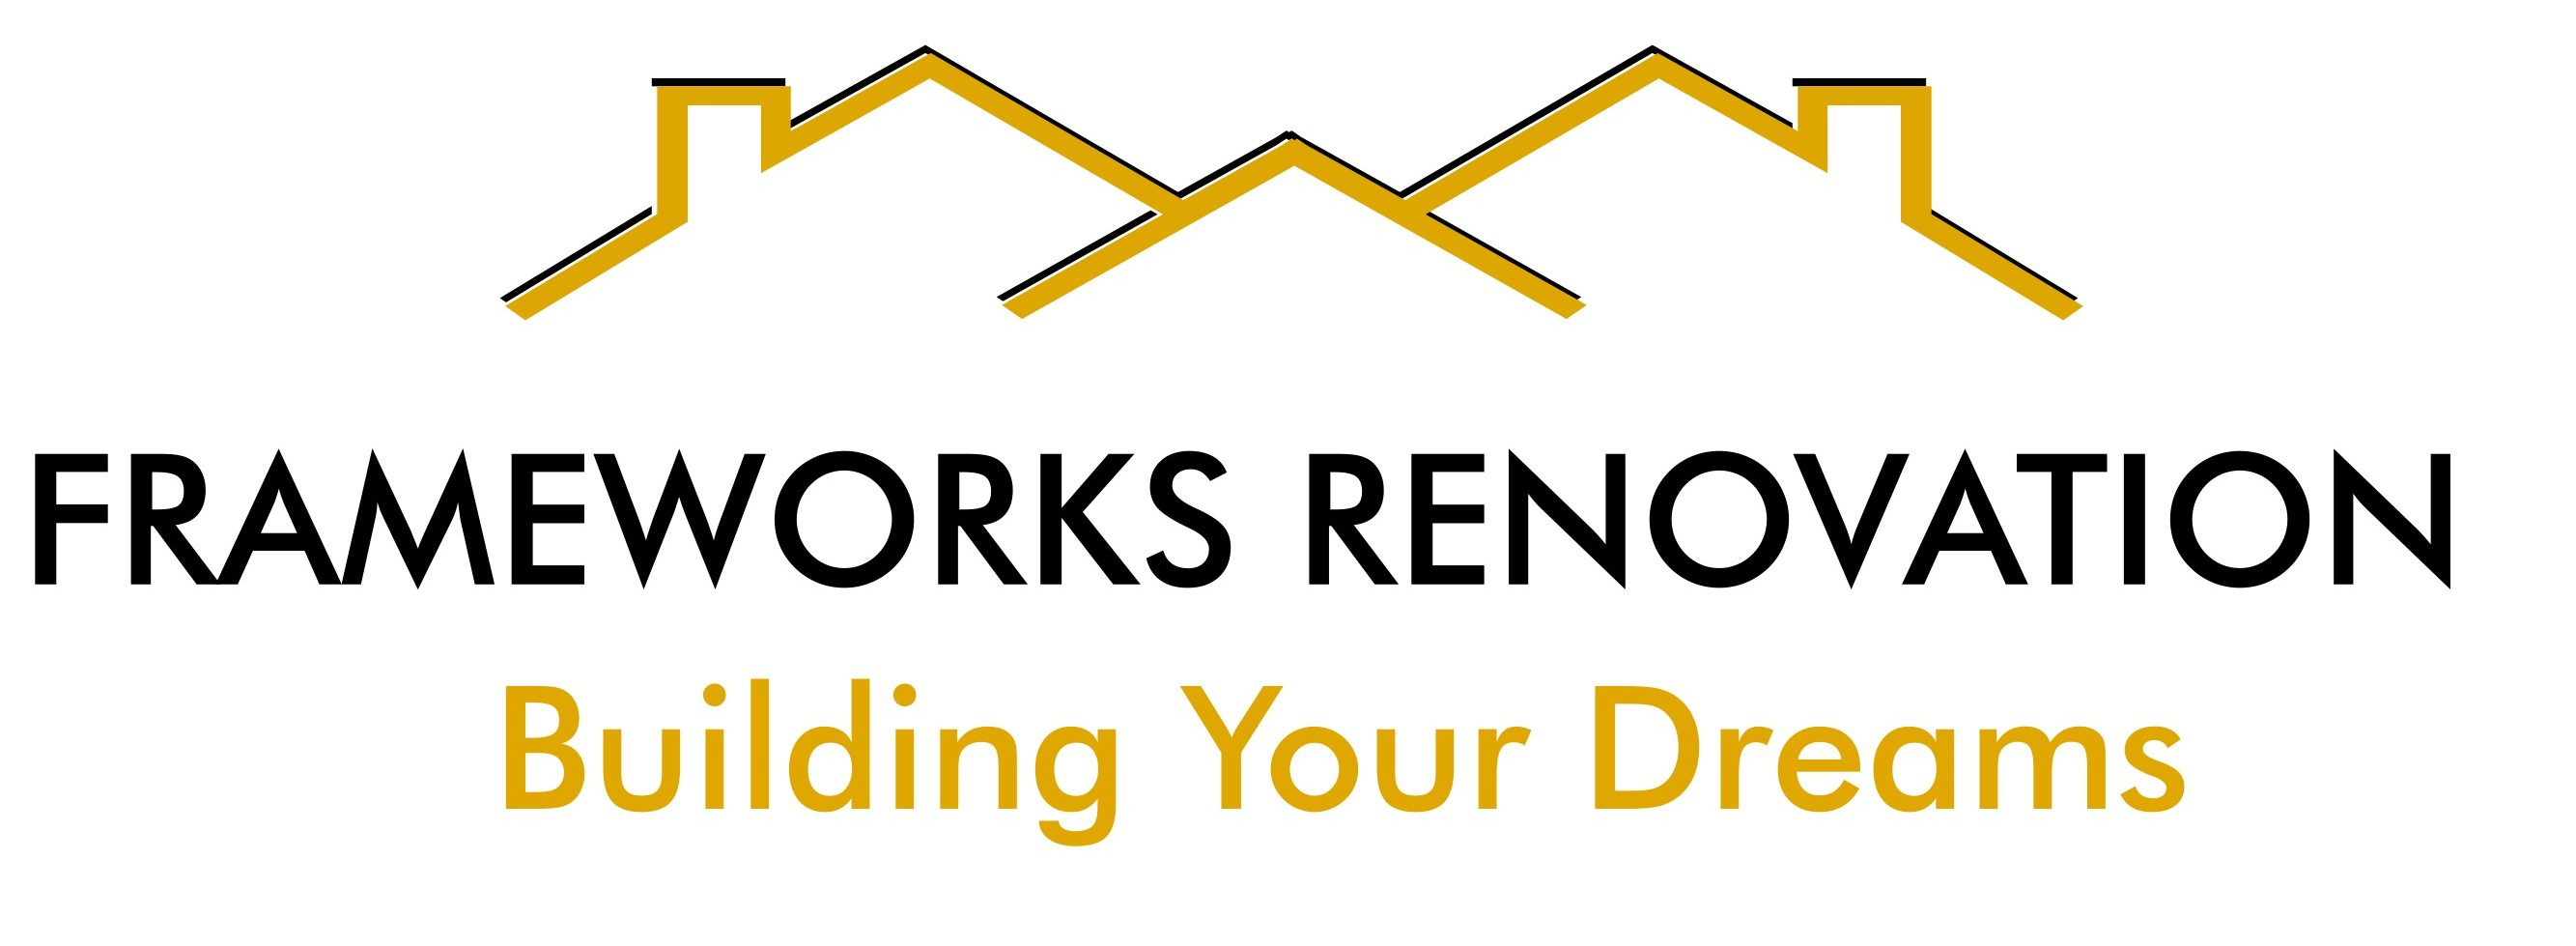 Frameworks Renovation